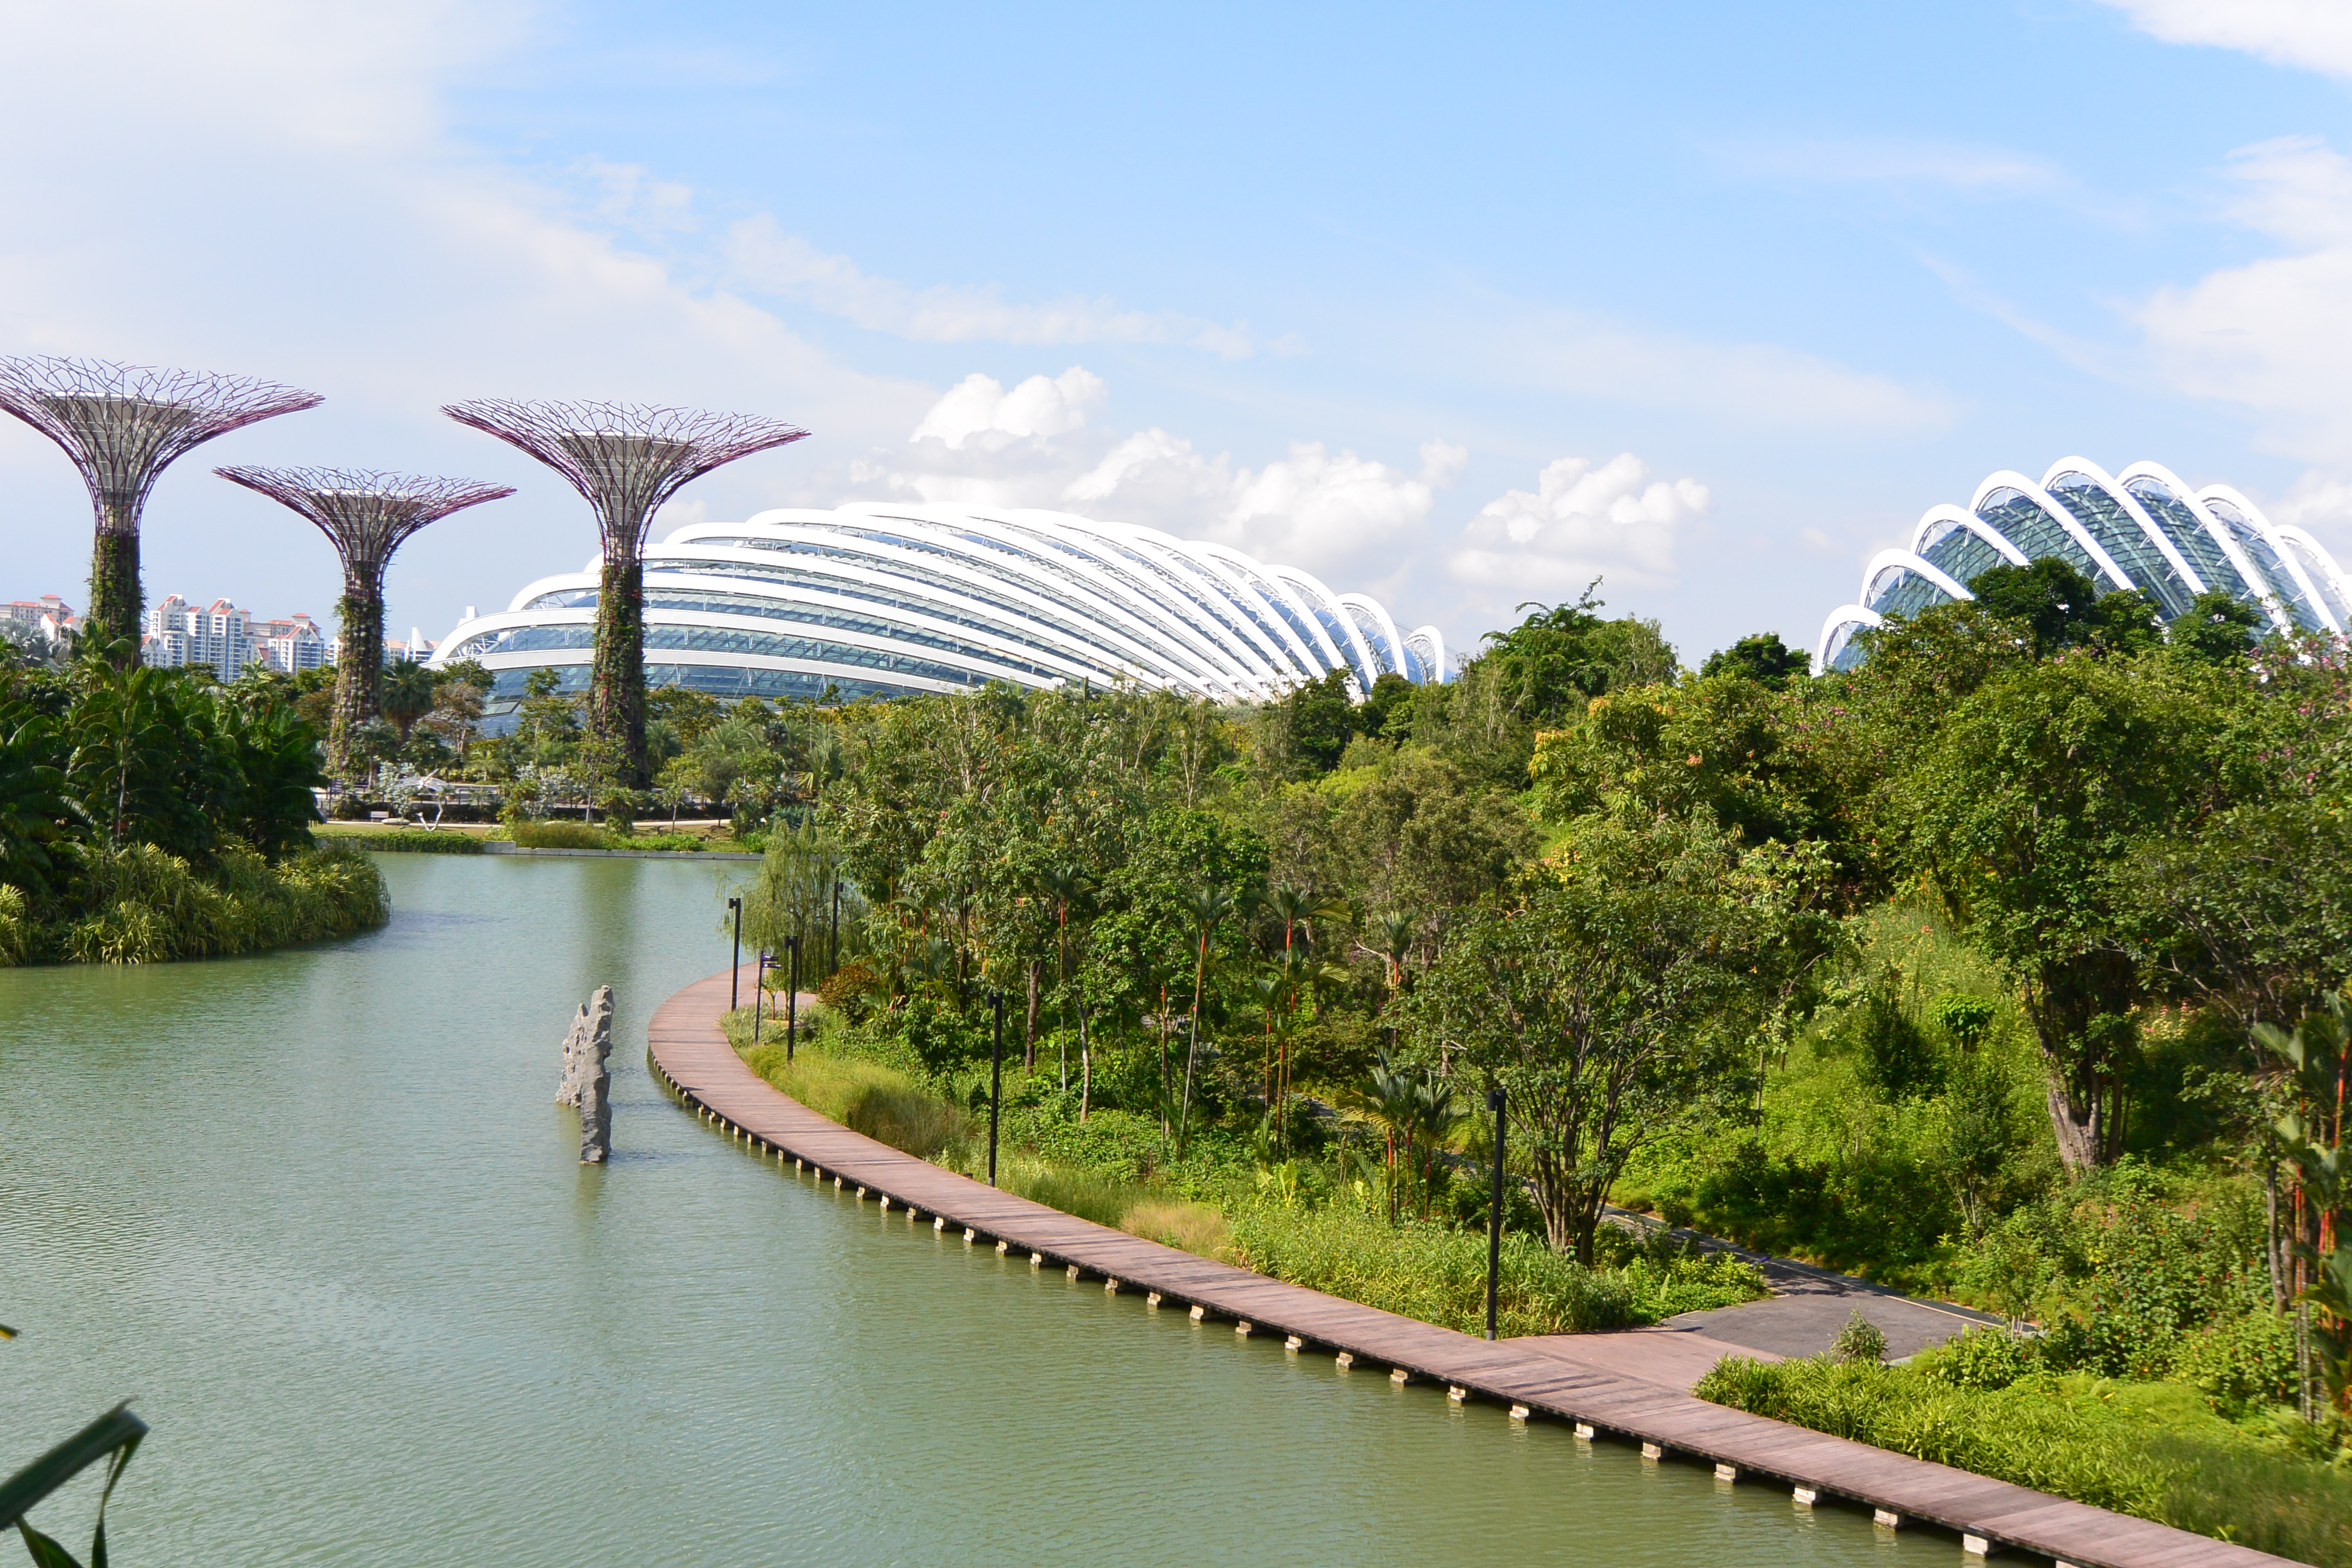 we were looking for ways to see as much as we could in singapore without having to sell any organs and we found tickets on groupon to the gardens by the